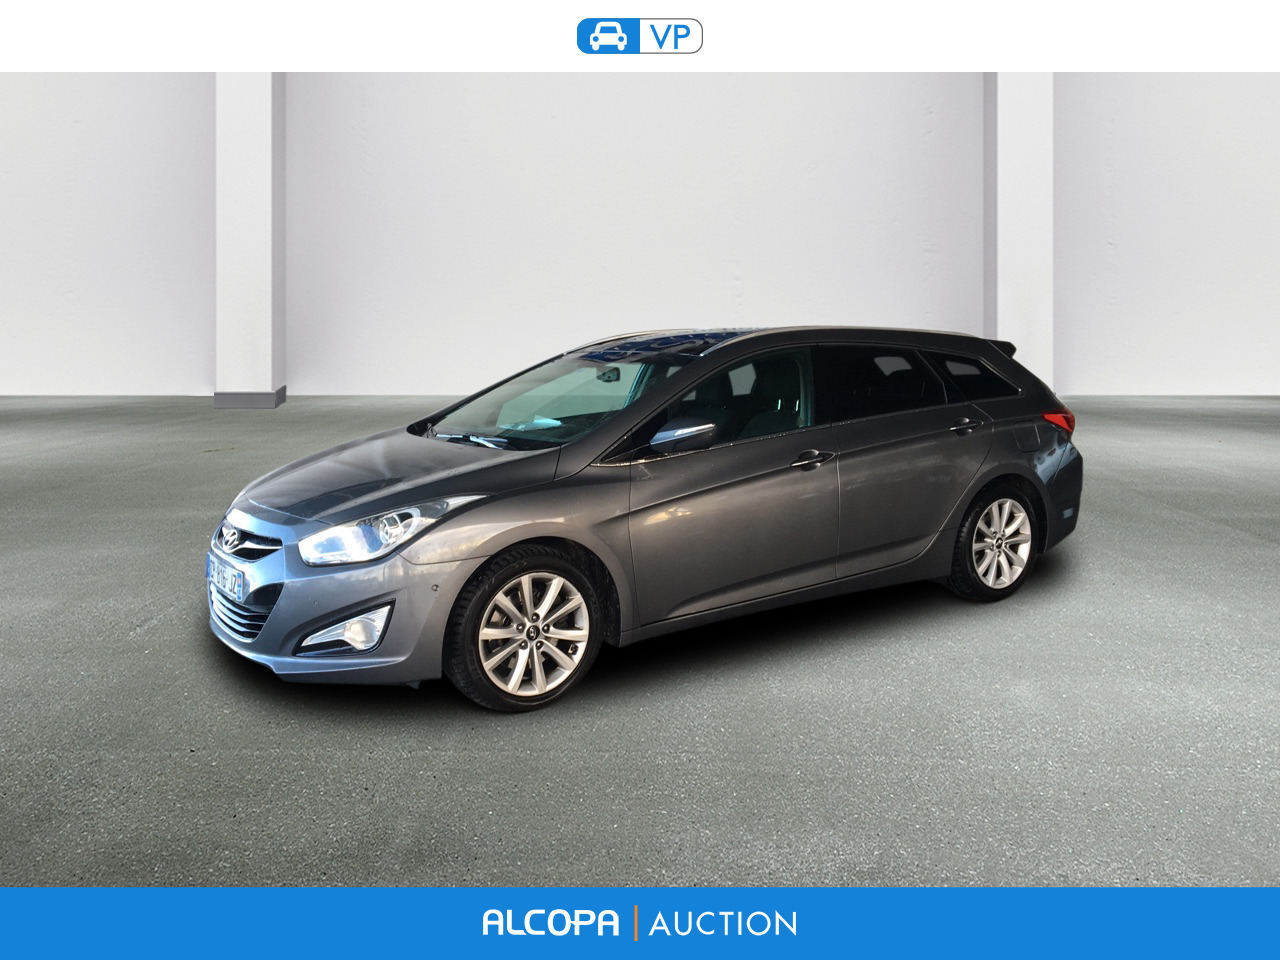 hyundai i40 i40 sw 1 7 crdi 136 pack premium bv6 lyon alcopa auction. Black Bedroom Furniture Sets. Home Design Ideas